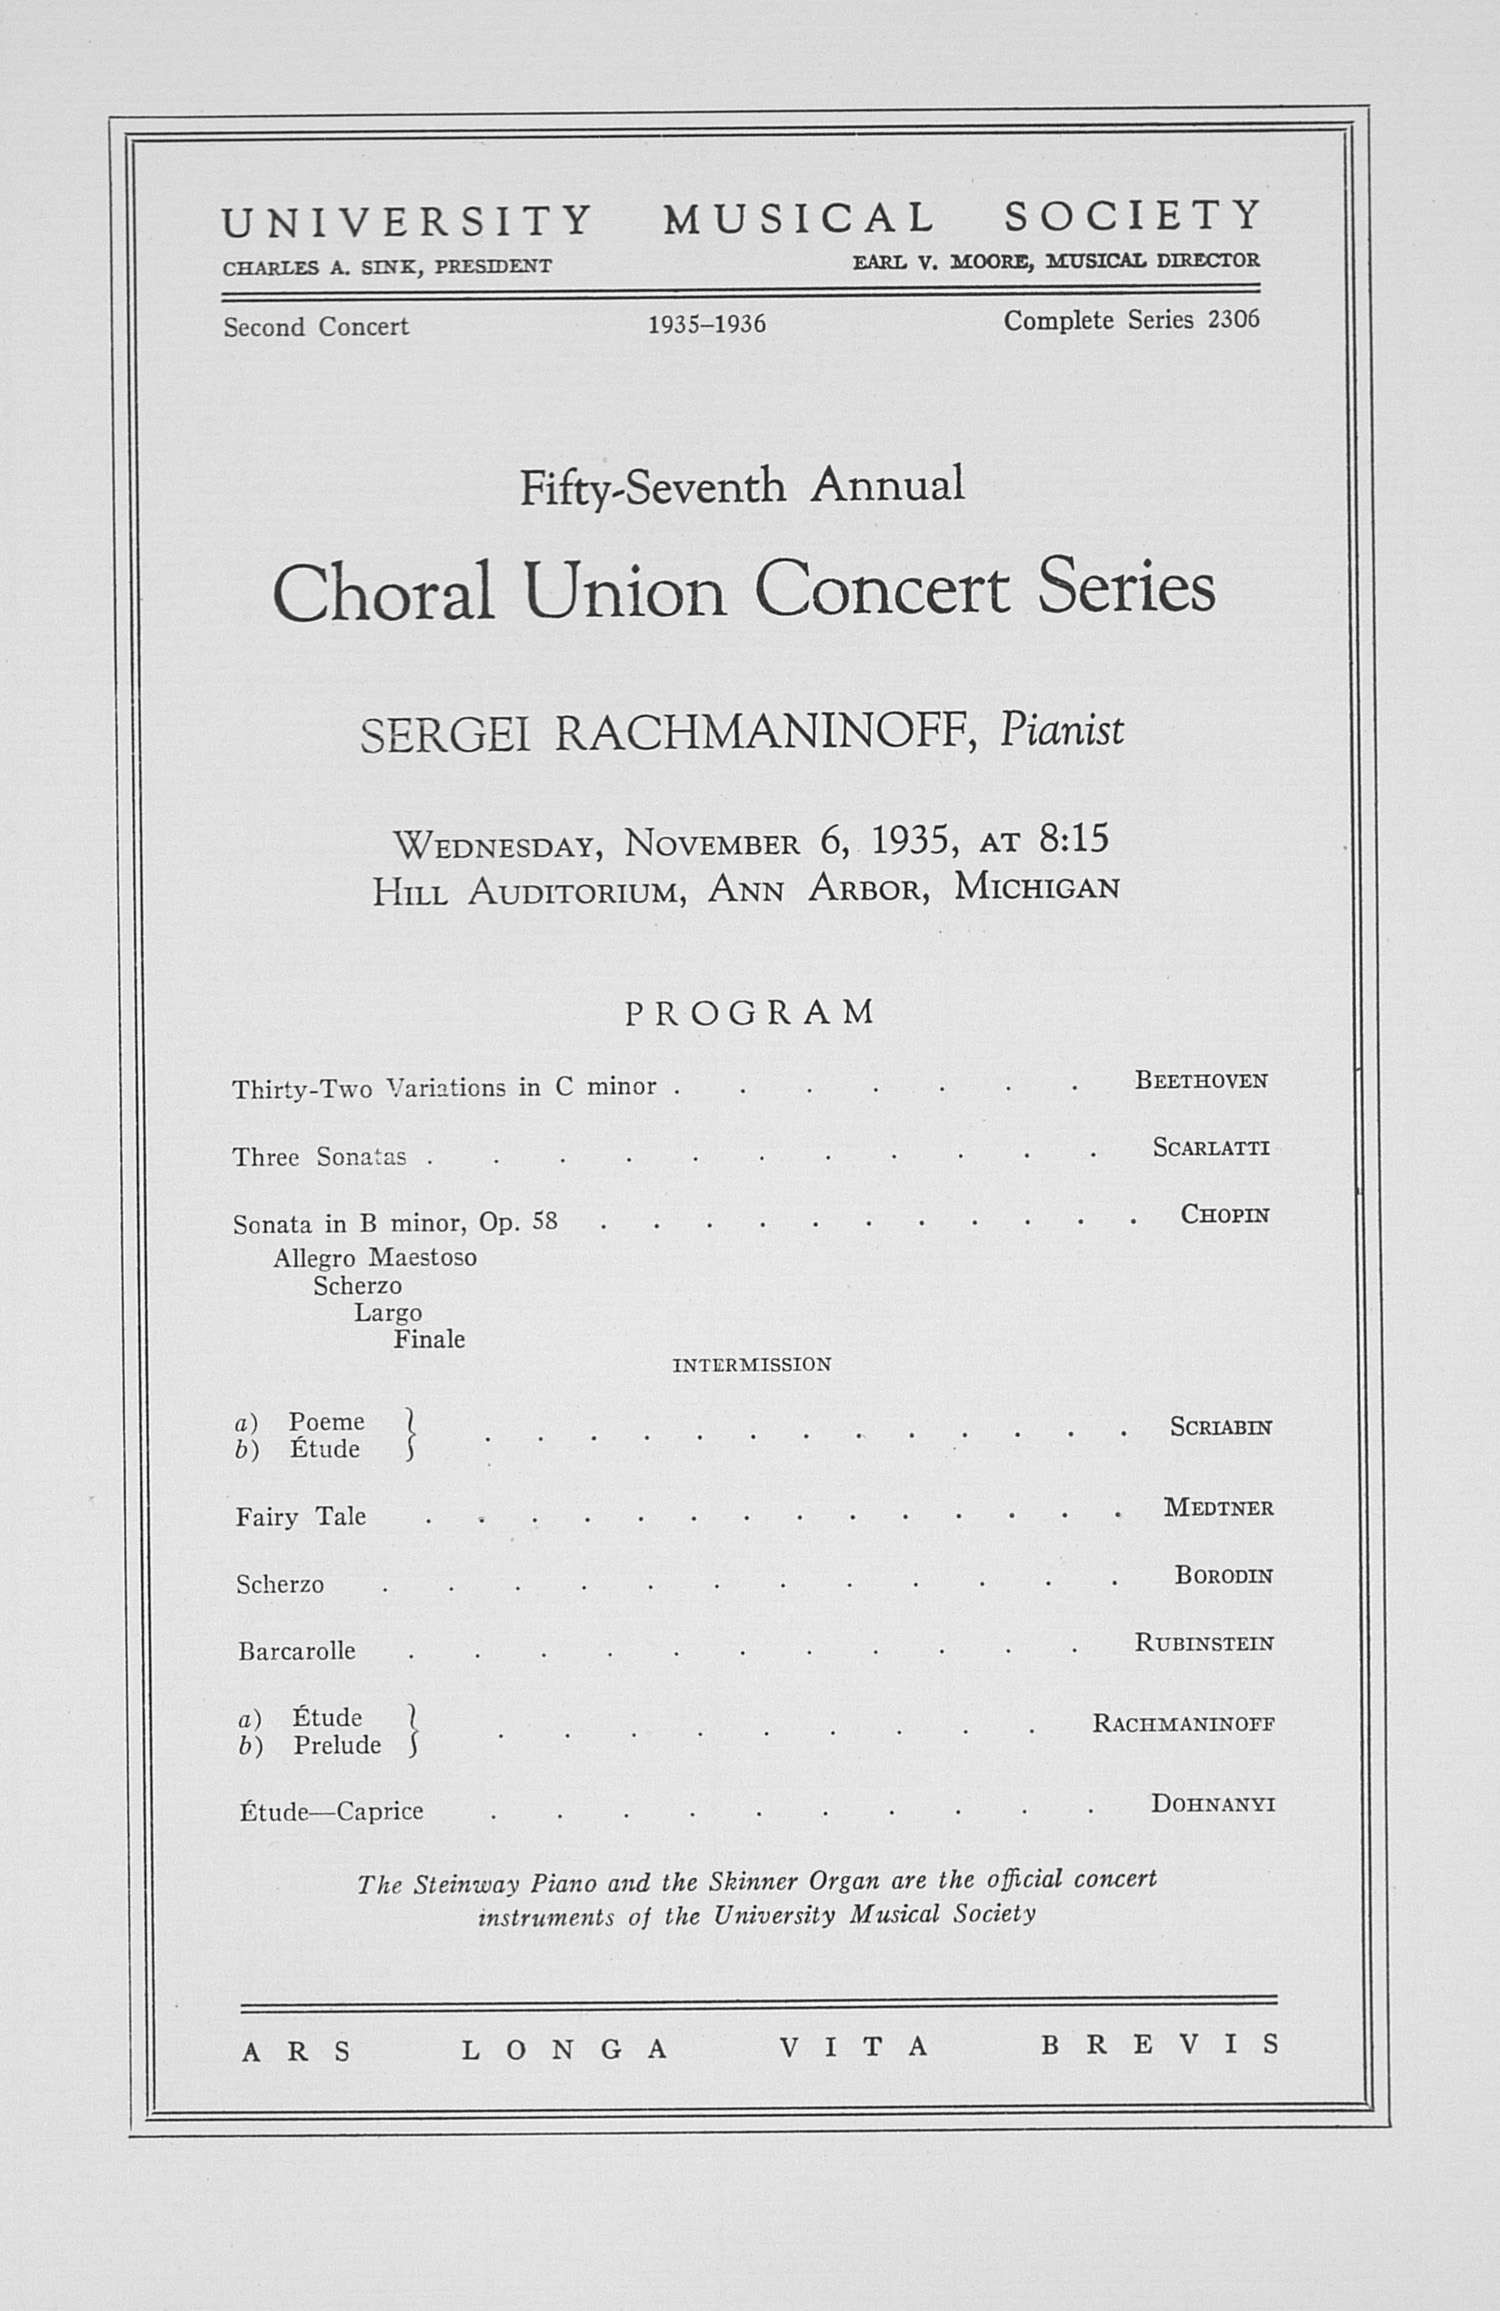 UMS Concert Program, November 6, 1935: Fifty-seventh Annual Choral Union Concert Series -- Sergei Rachmaninoff image